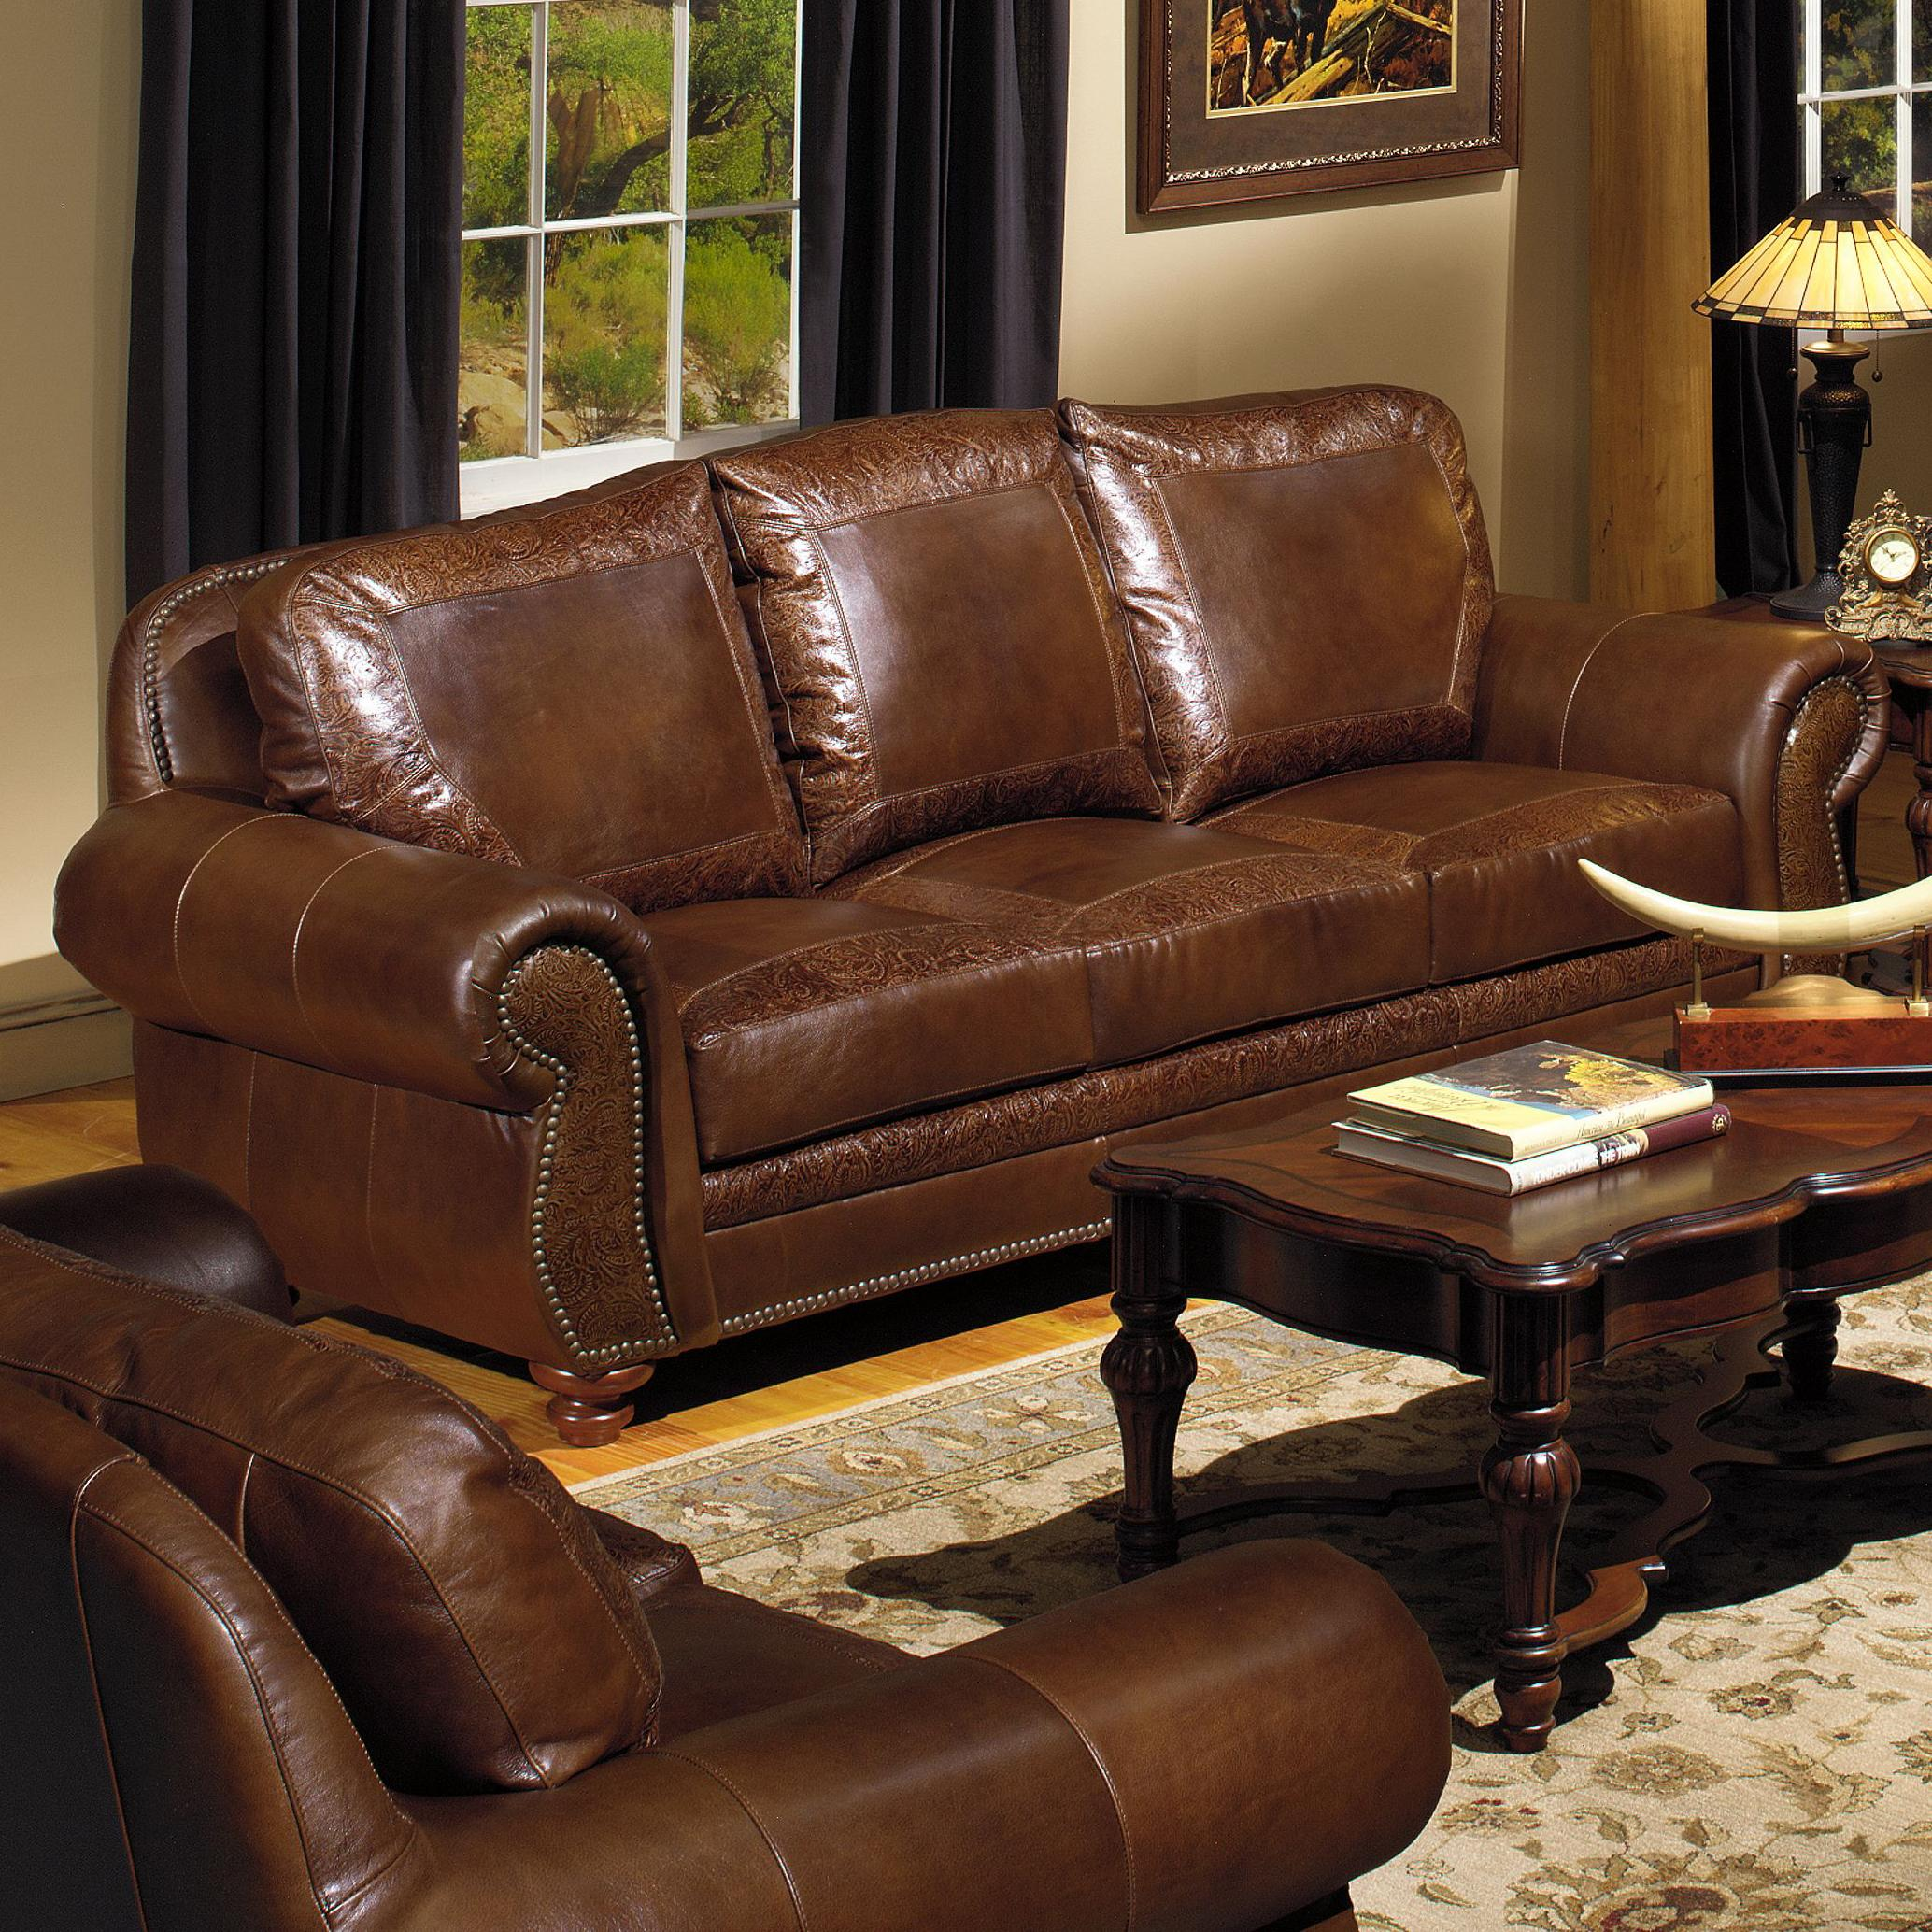 Leather furniture Traditional leather sofa with nail head trimming SXKKAFS